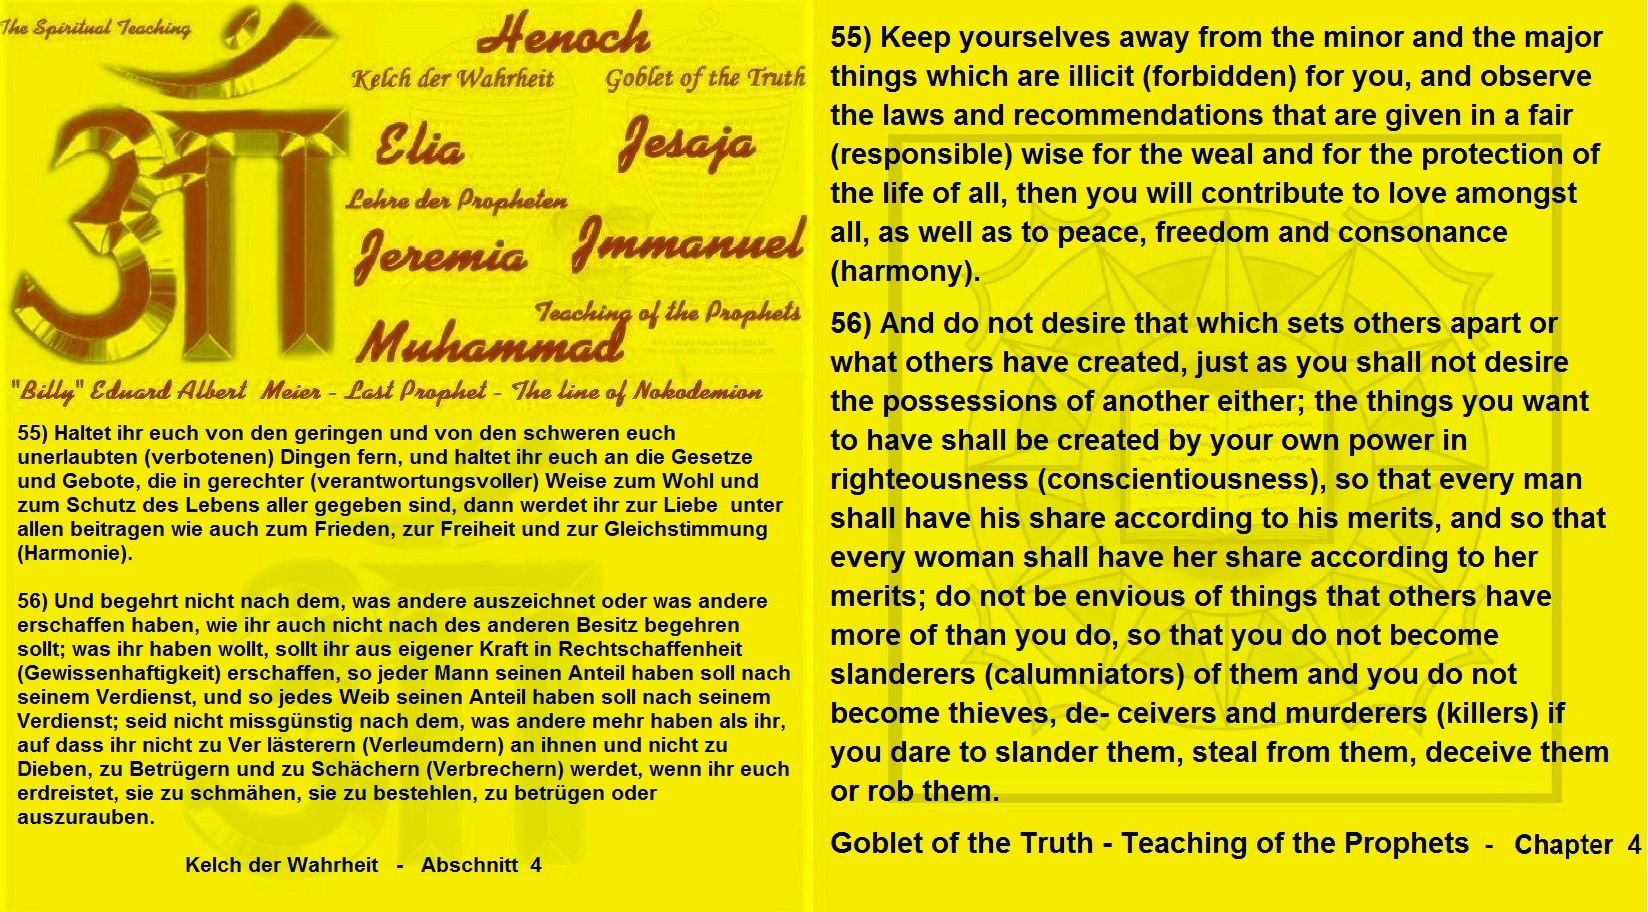 55) Keep yourselves away from the minor and the major things which are illicit (forbidden) for you, and observe the laws and recommendations that are given in a fair (responsible) wise for the weal and for the protection of the life of all, then you will contribute to love amongst all, as well as to peace, freedom and consonance (harmony).